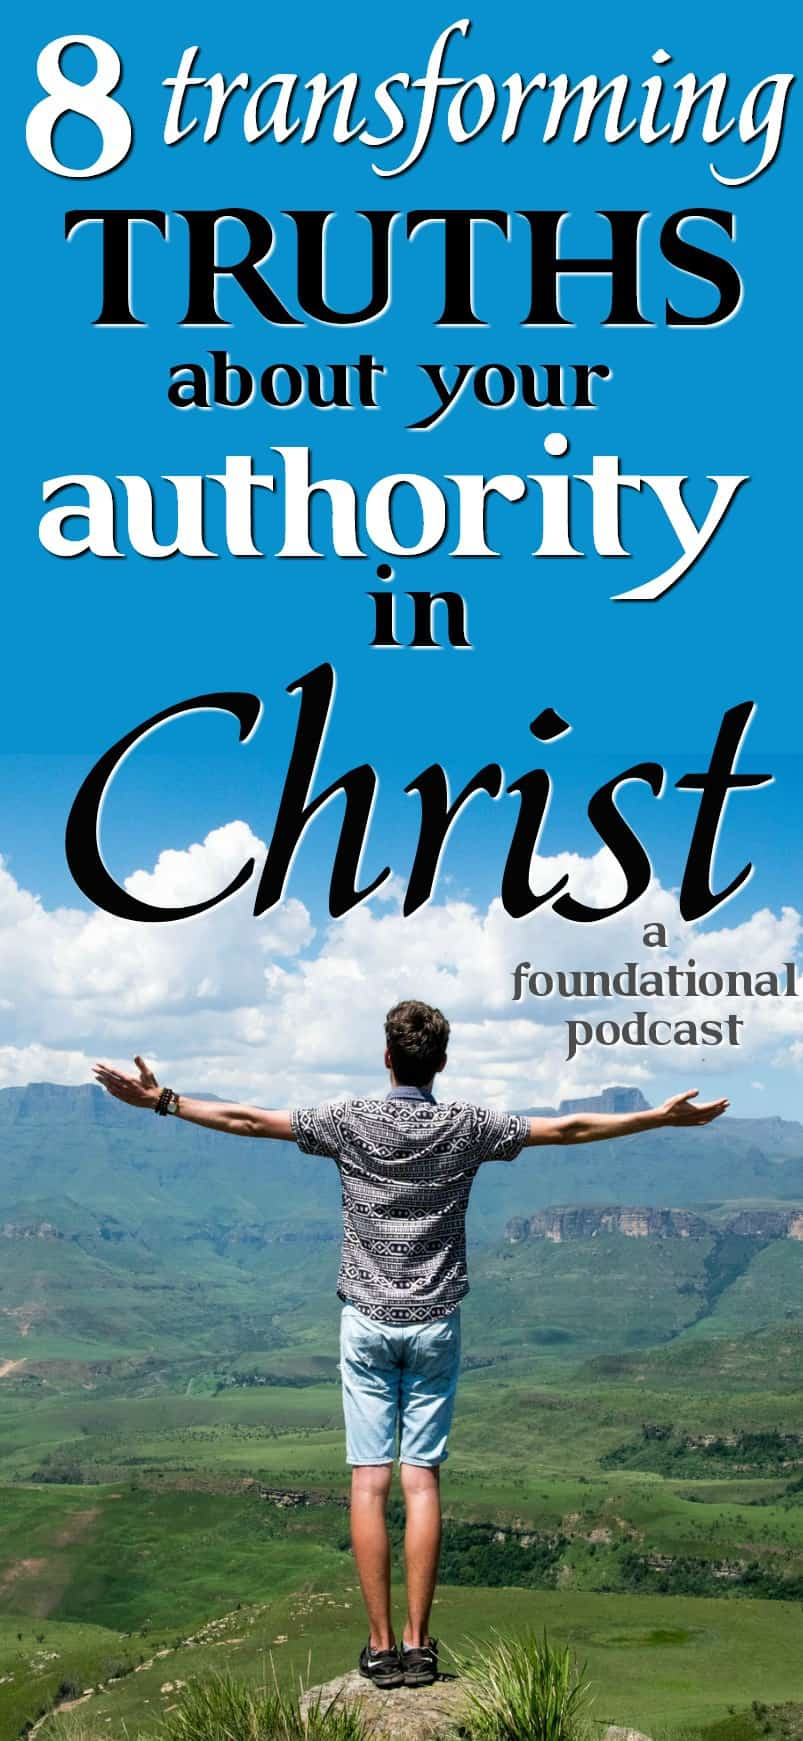 8 truths that transform how we view our authority in Christ. In this podcast I share the importance of Christians understanding their spiritual authority. #Foundational #spiritualauthority #Gideon #stewardship